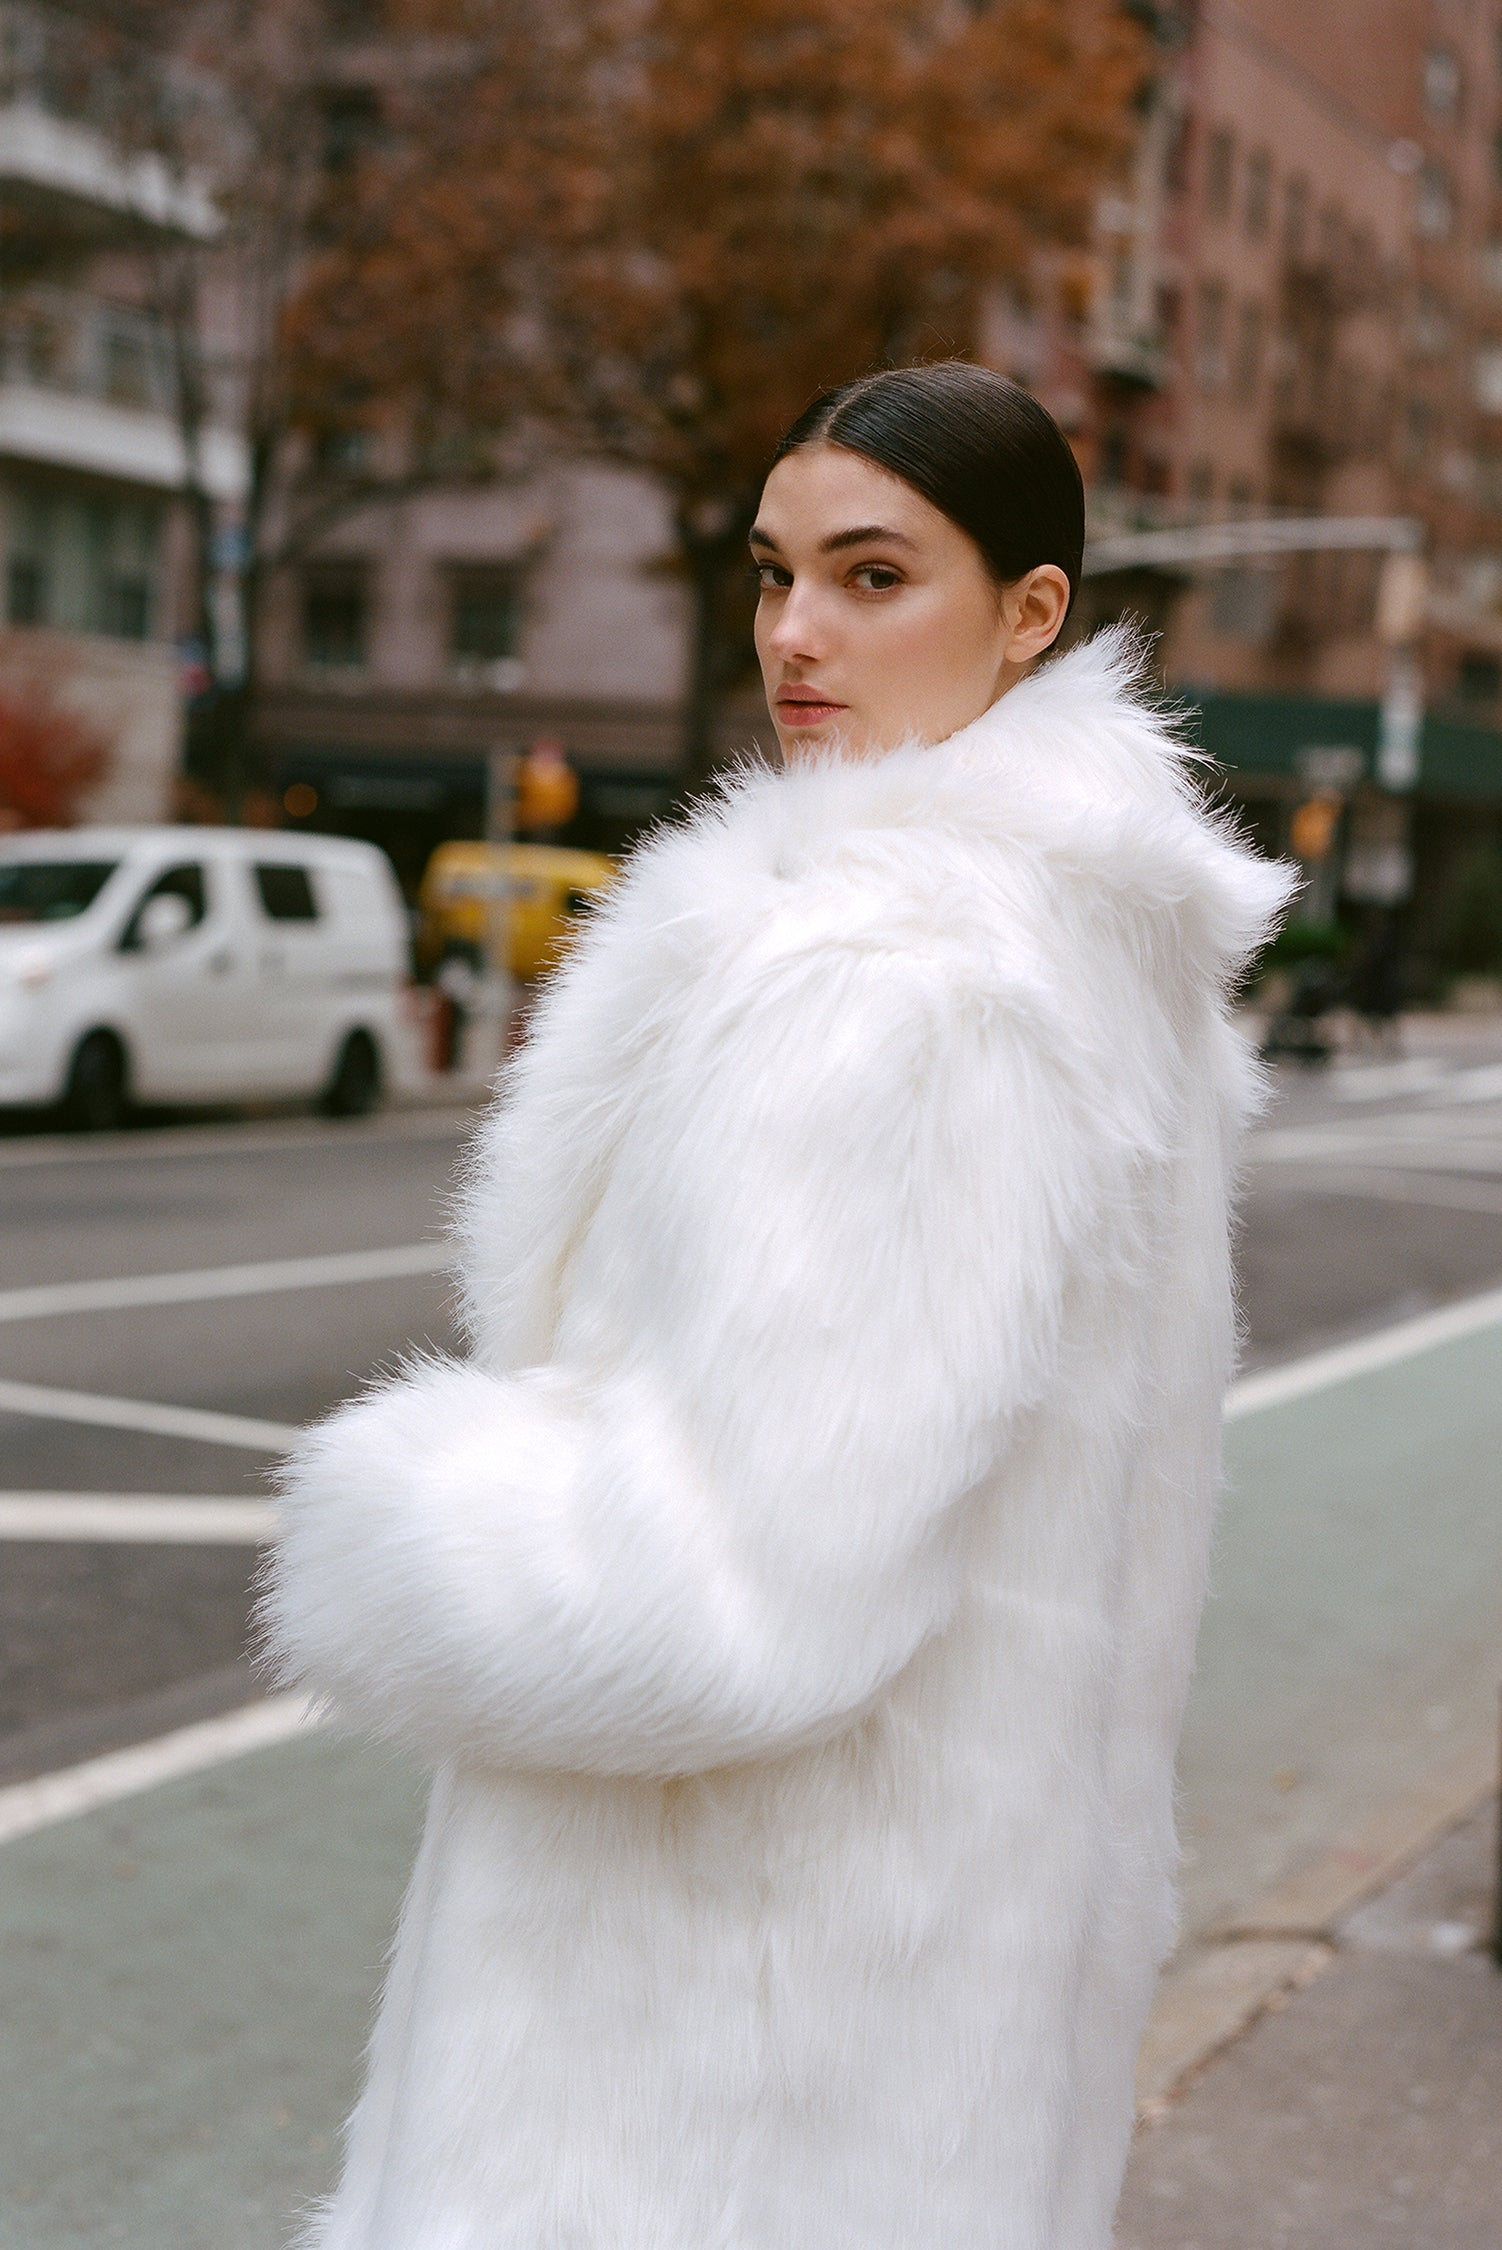 Marei1998's Datura Long Faux Fur Coat In Ivory Color. Featuring A Slight A-Lined Silhouette, It Is Made From The Fluffiest Long Pile Faux Fur. Front View.